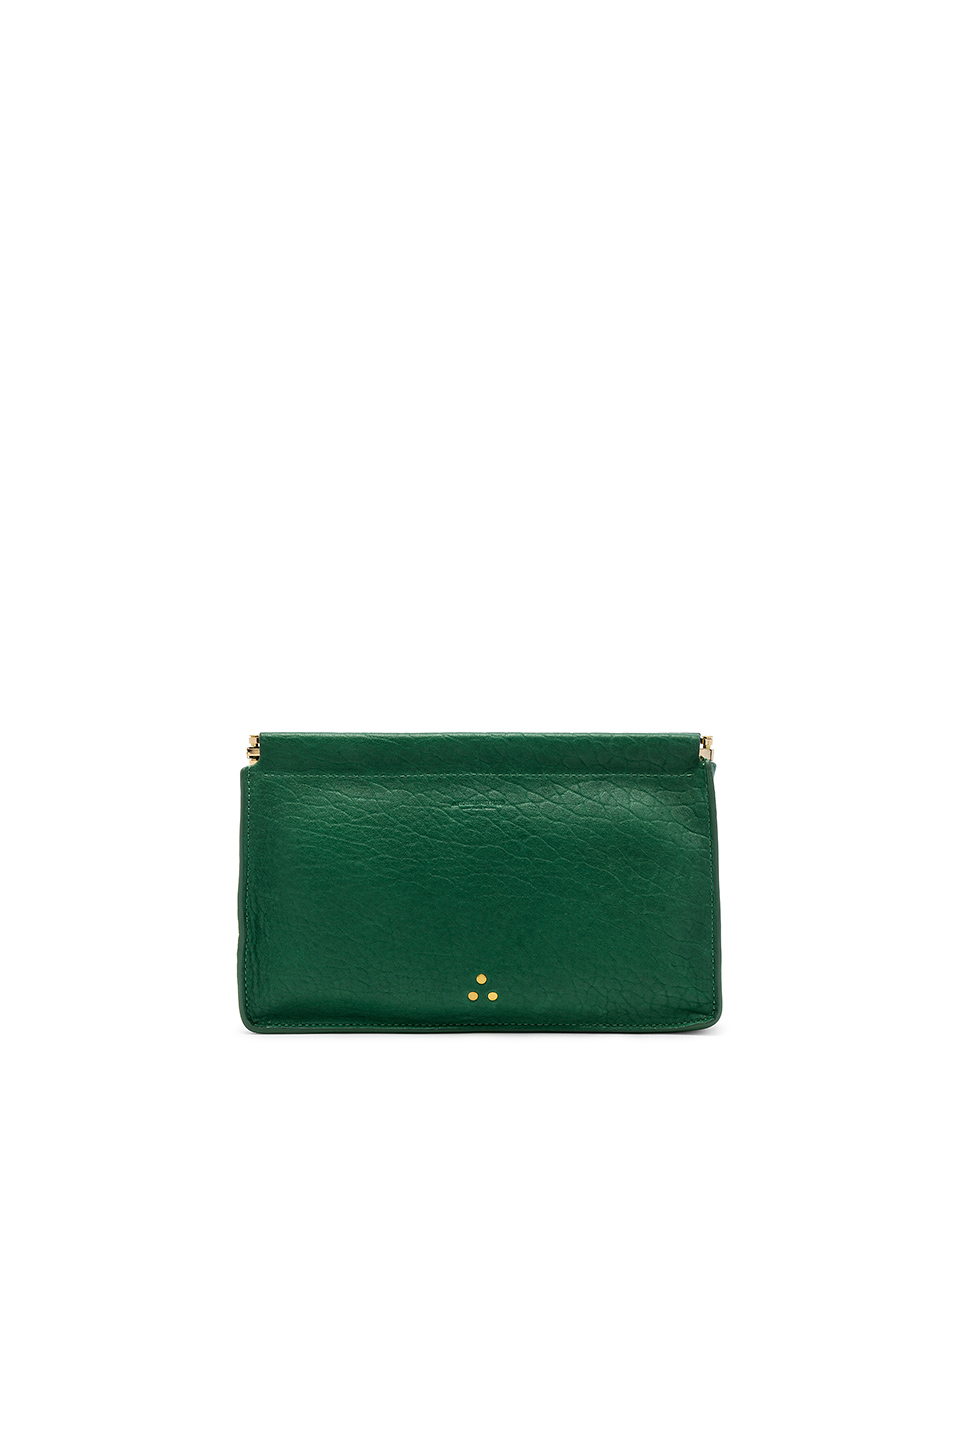 4225cd0b91270 JÉRÔMe Dreyfuss Jerome Dreyfuss Clic Clac Large Clutch In Vert In Green